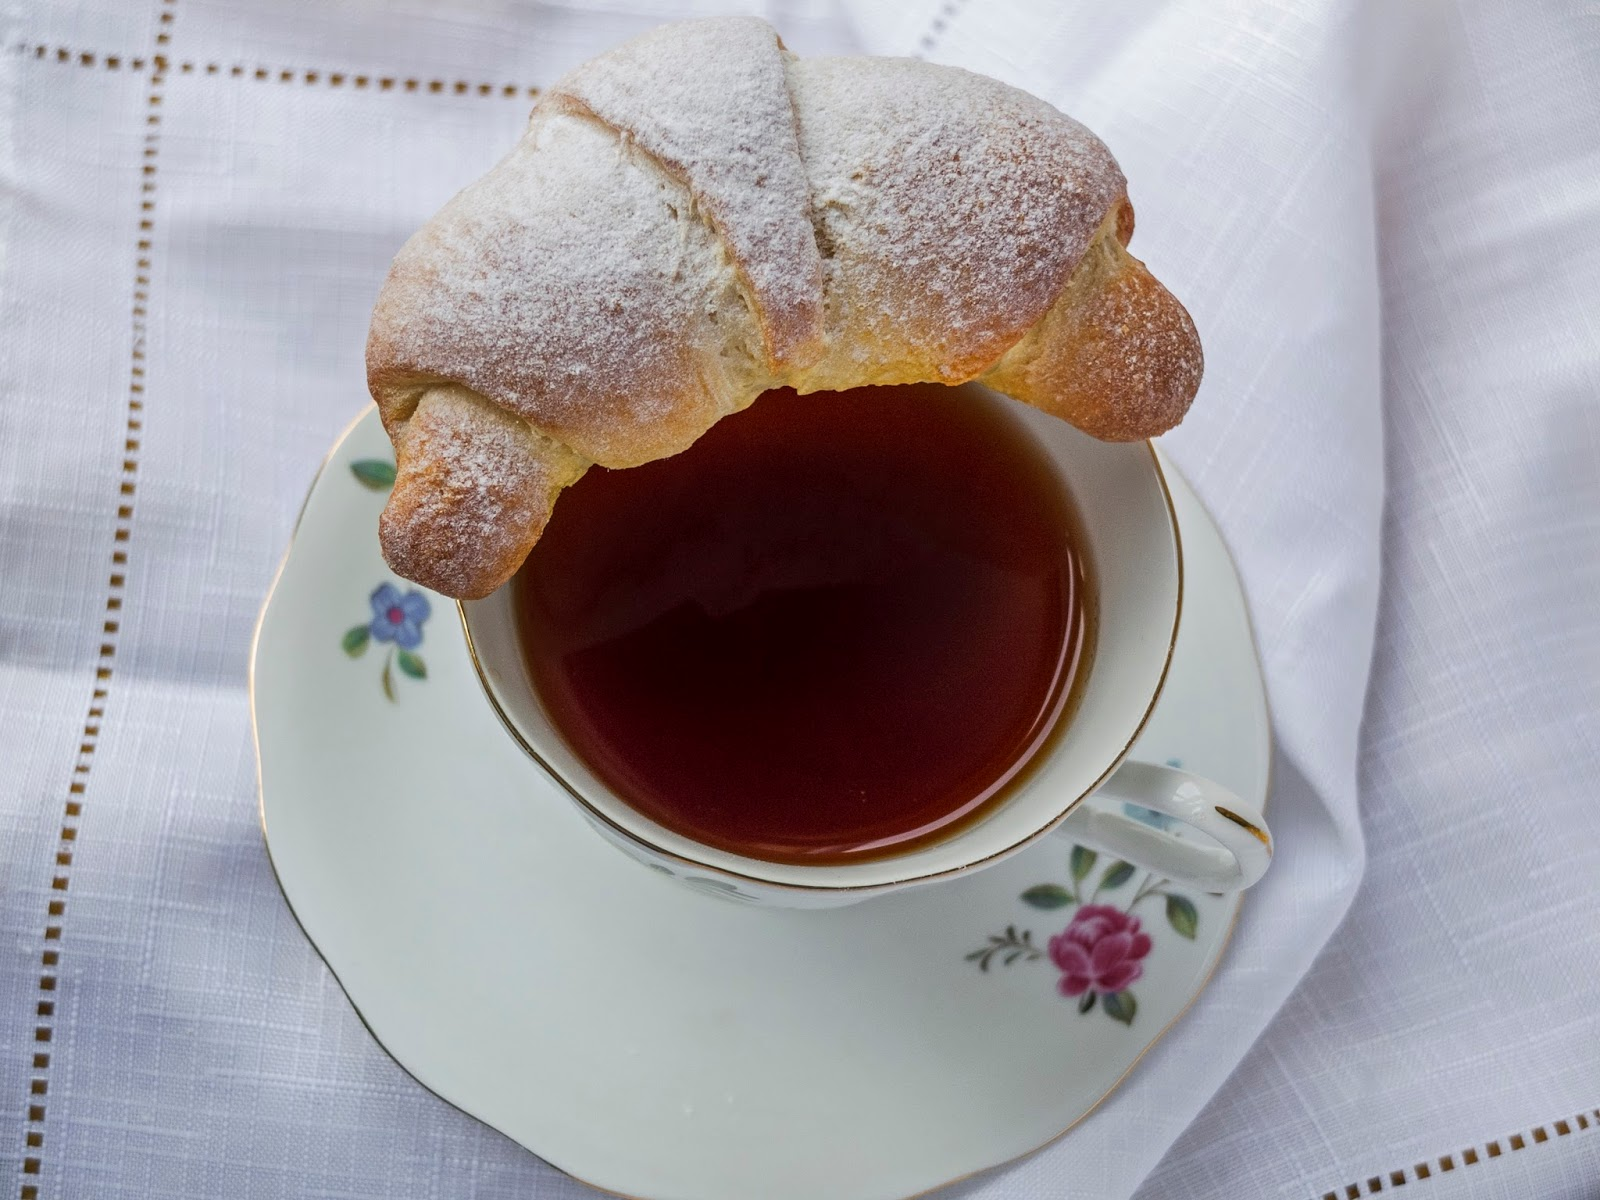 A yeast dough sweet bread sitting on the edge of a vintage teacup.